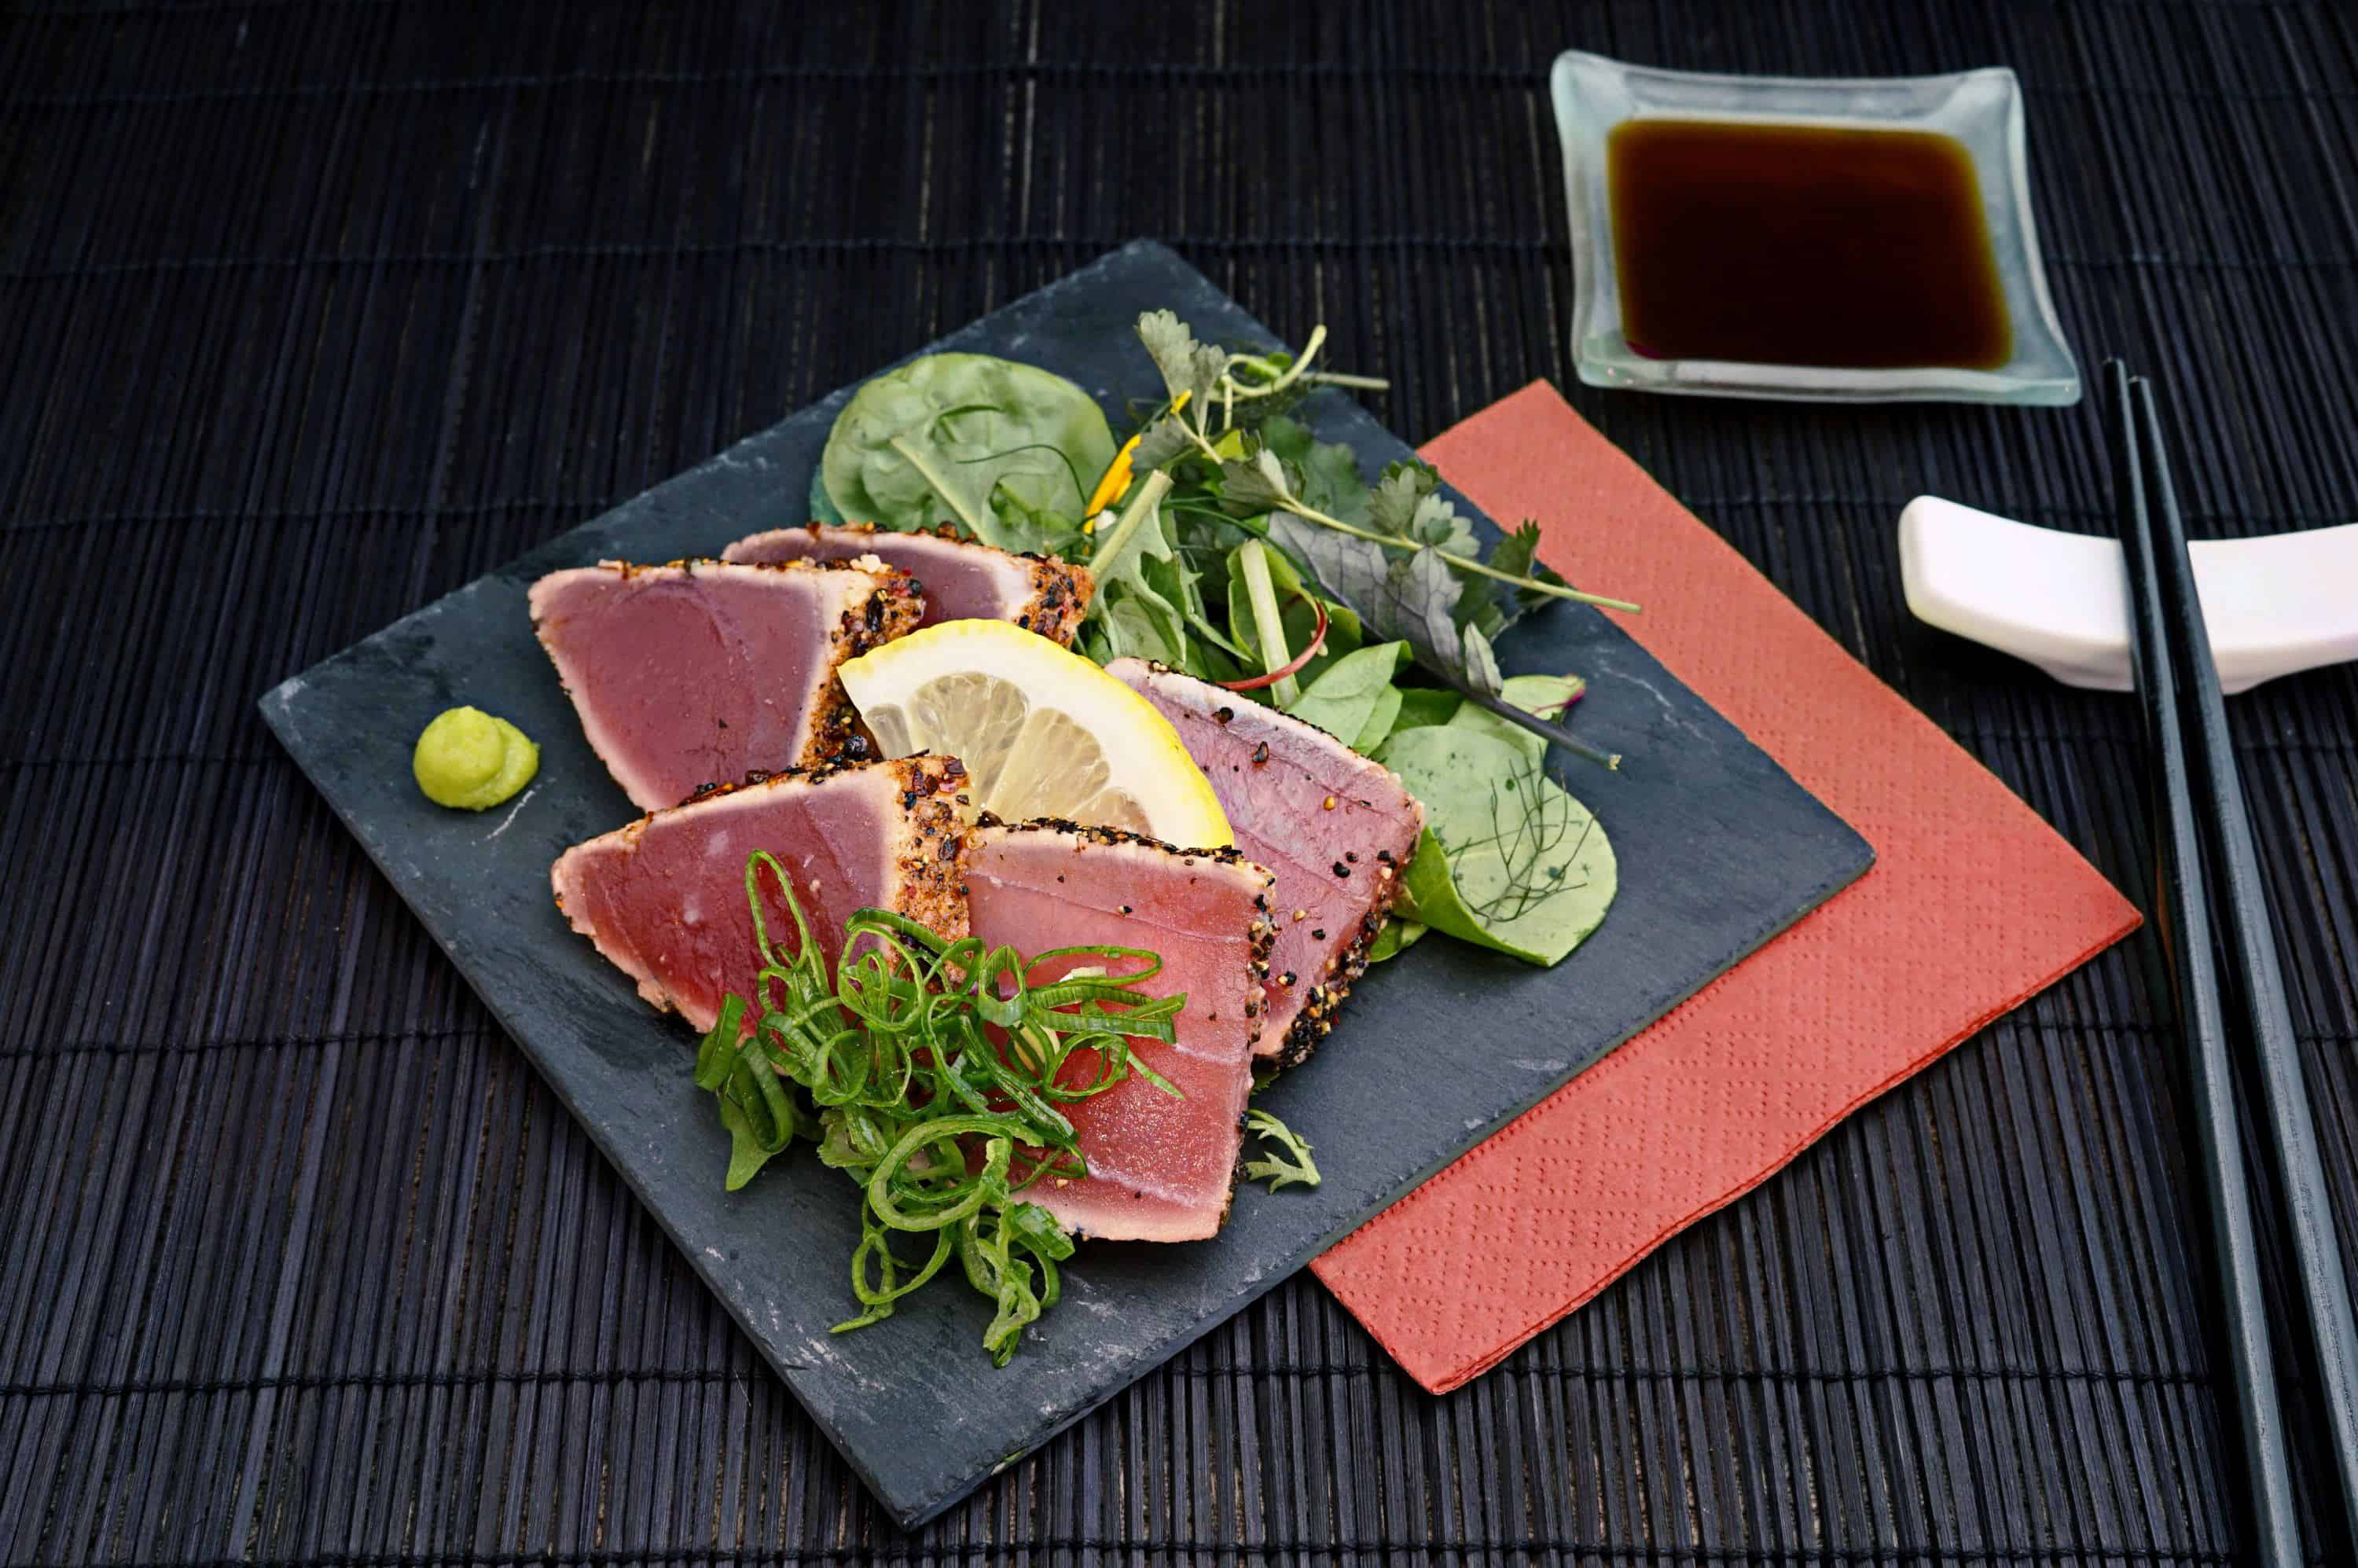 a plate of sashimi and vegetables with soy sauce and chopsticks next to it